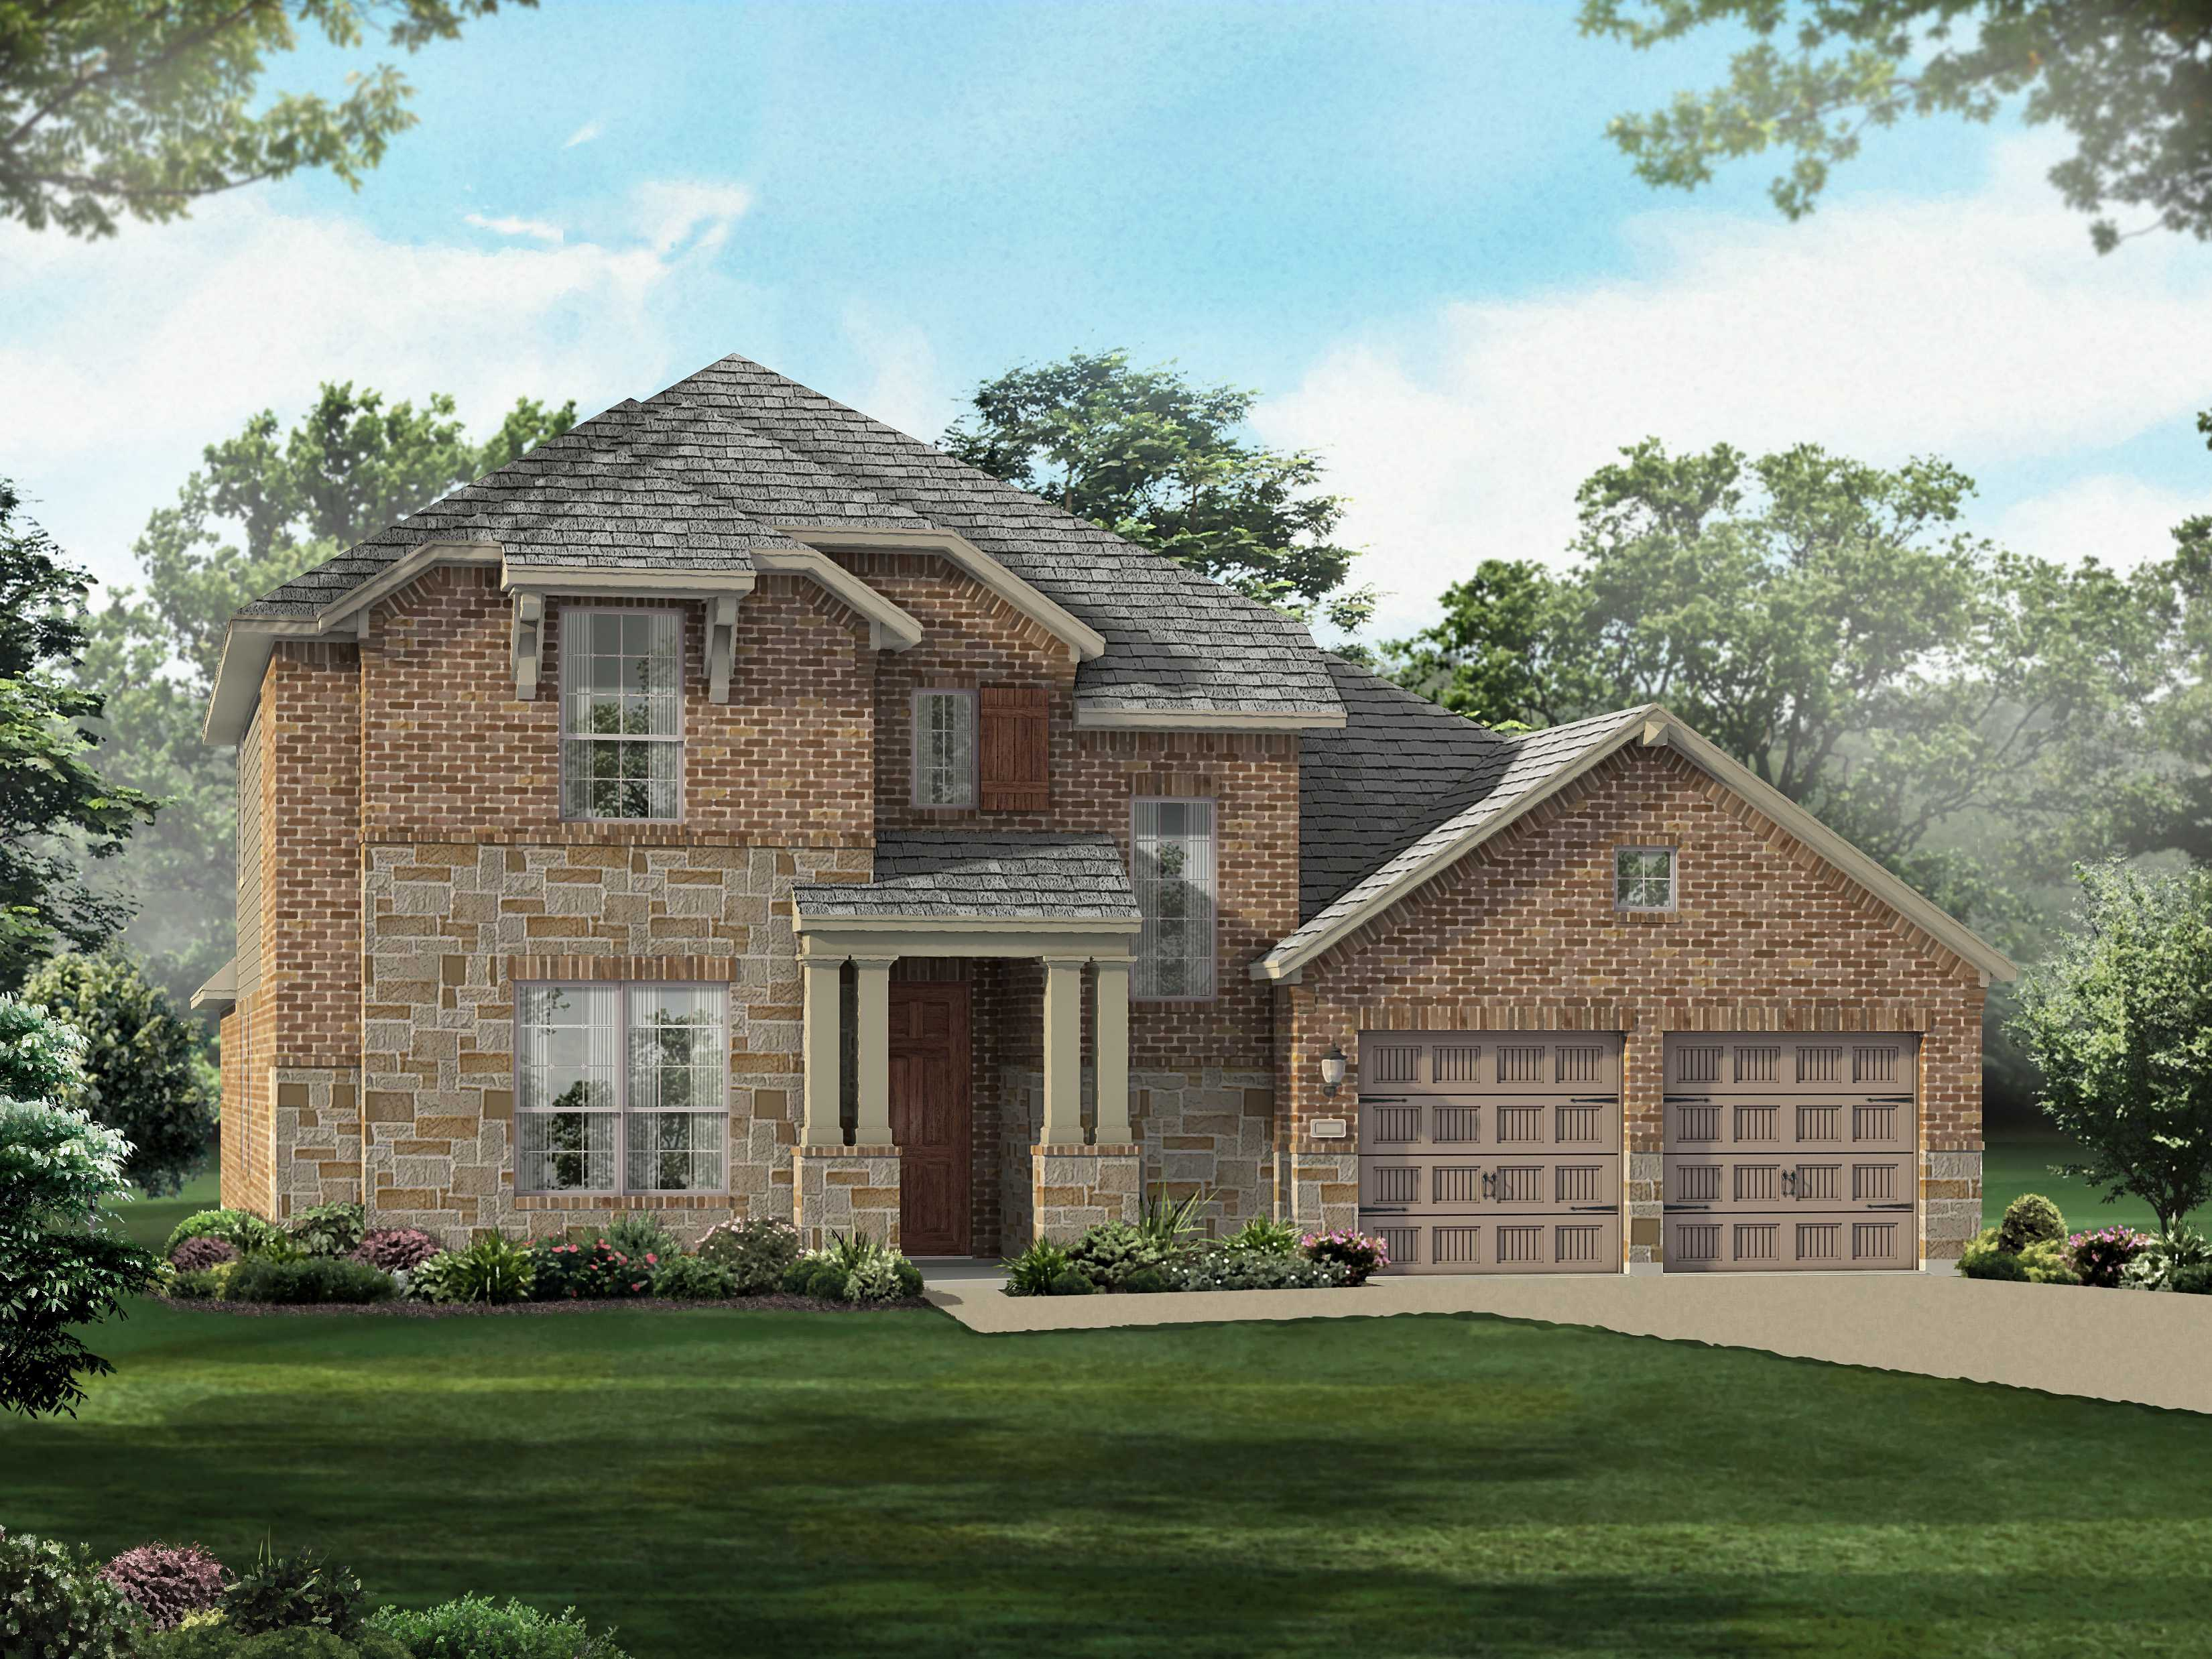 Photo of magnolia in tomball, tx 77375